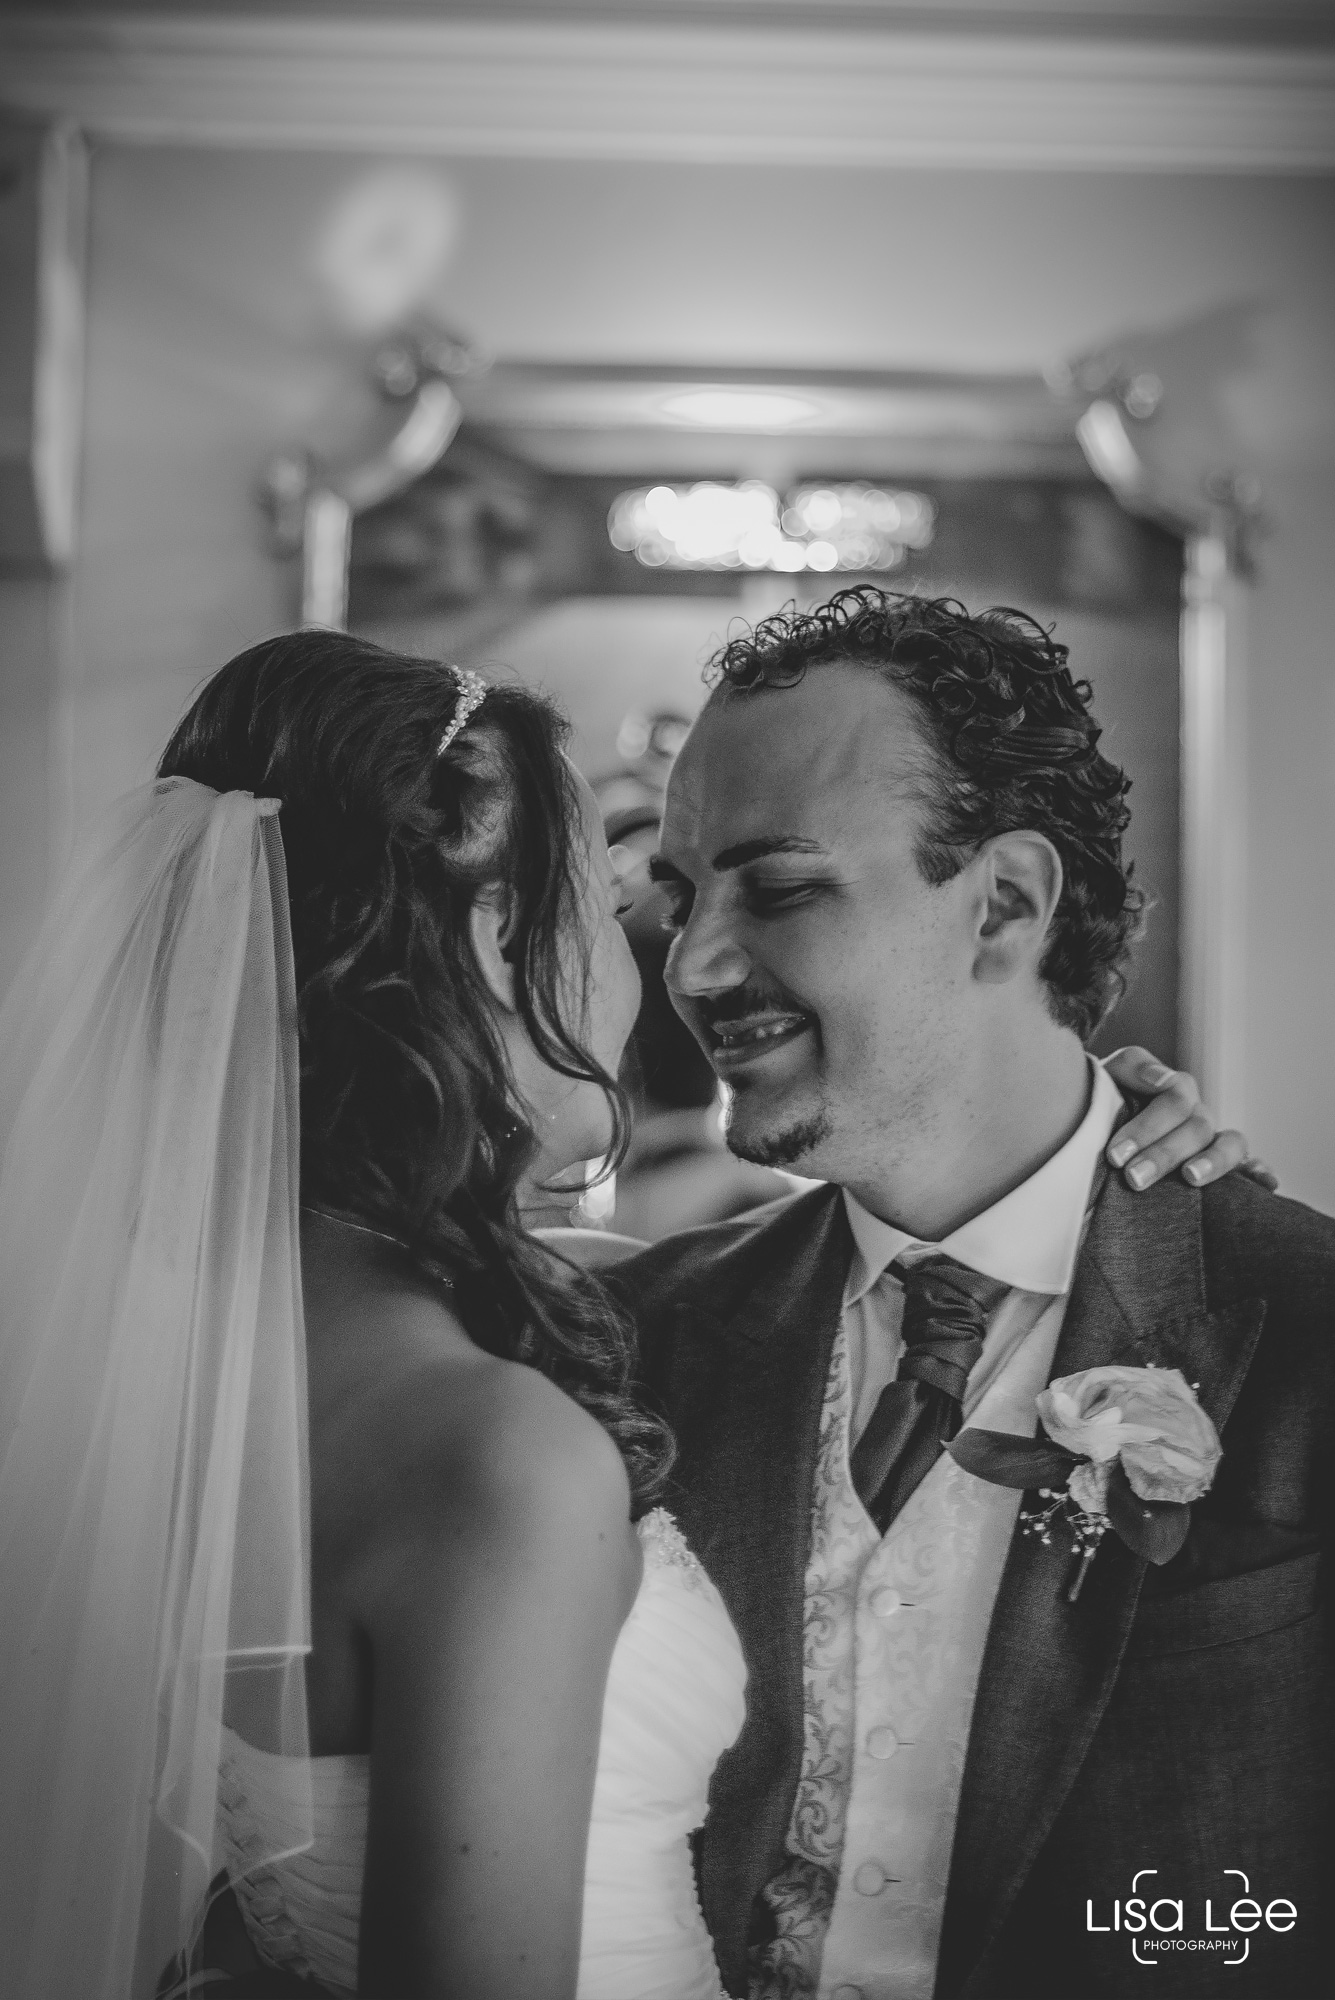 Lord-Bute-Hotel-Lisa-Lee-Documentary-Wedding-Photography-party-6.jpg